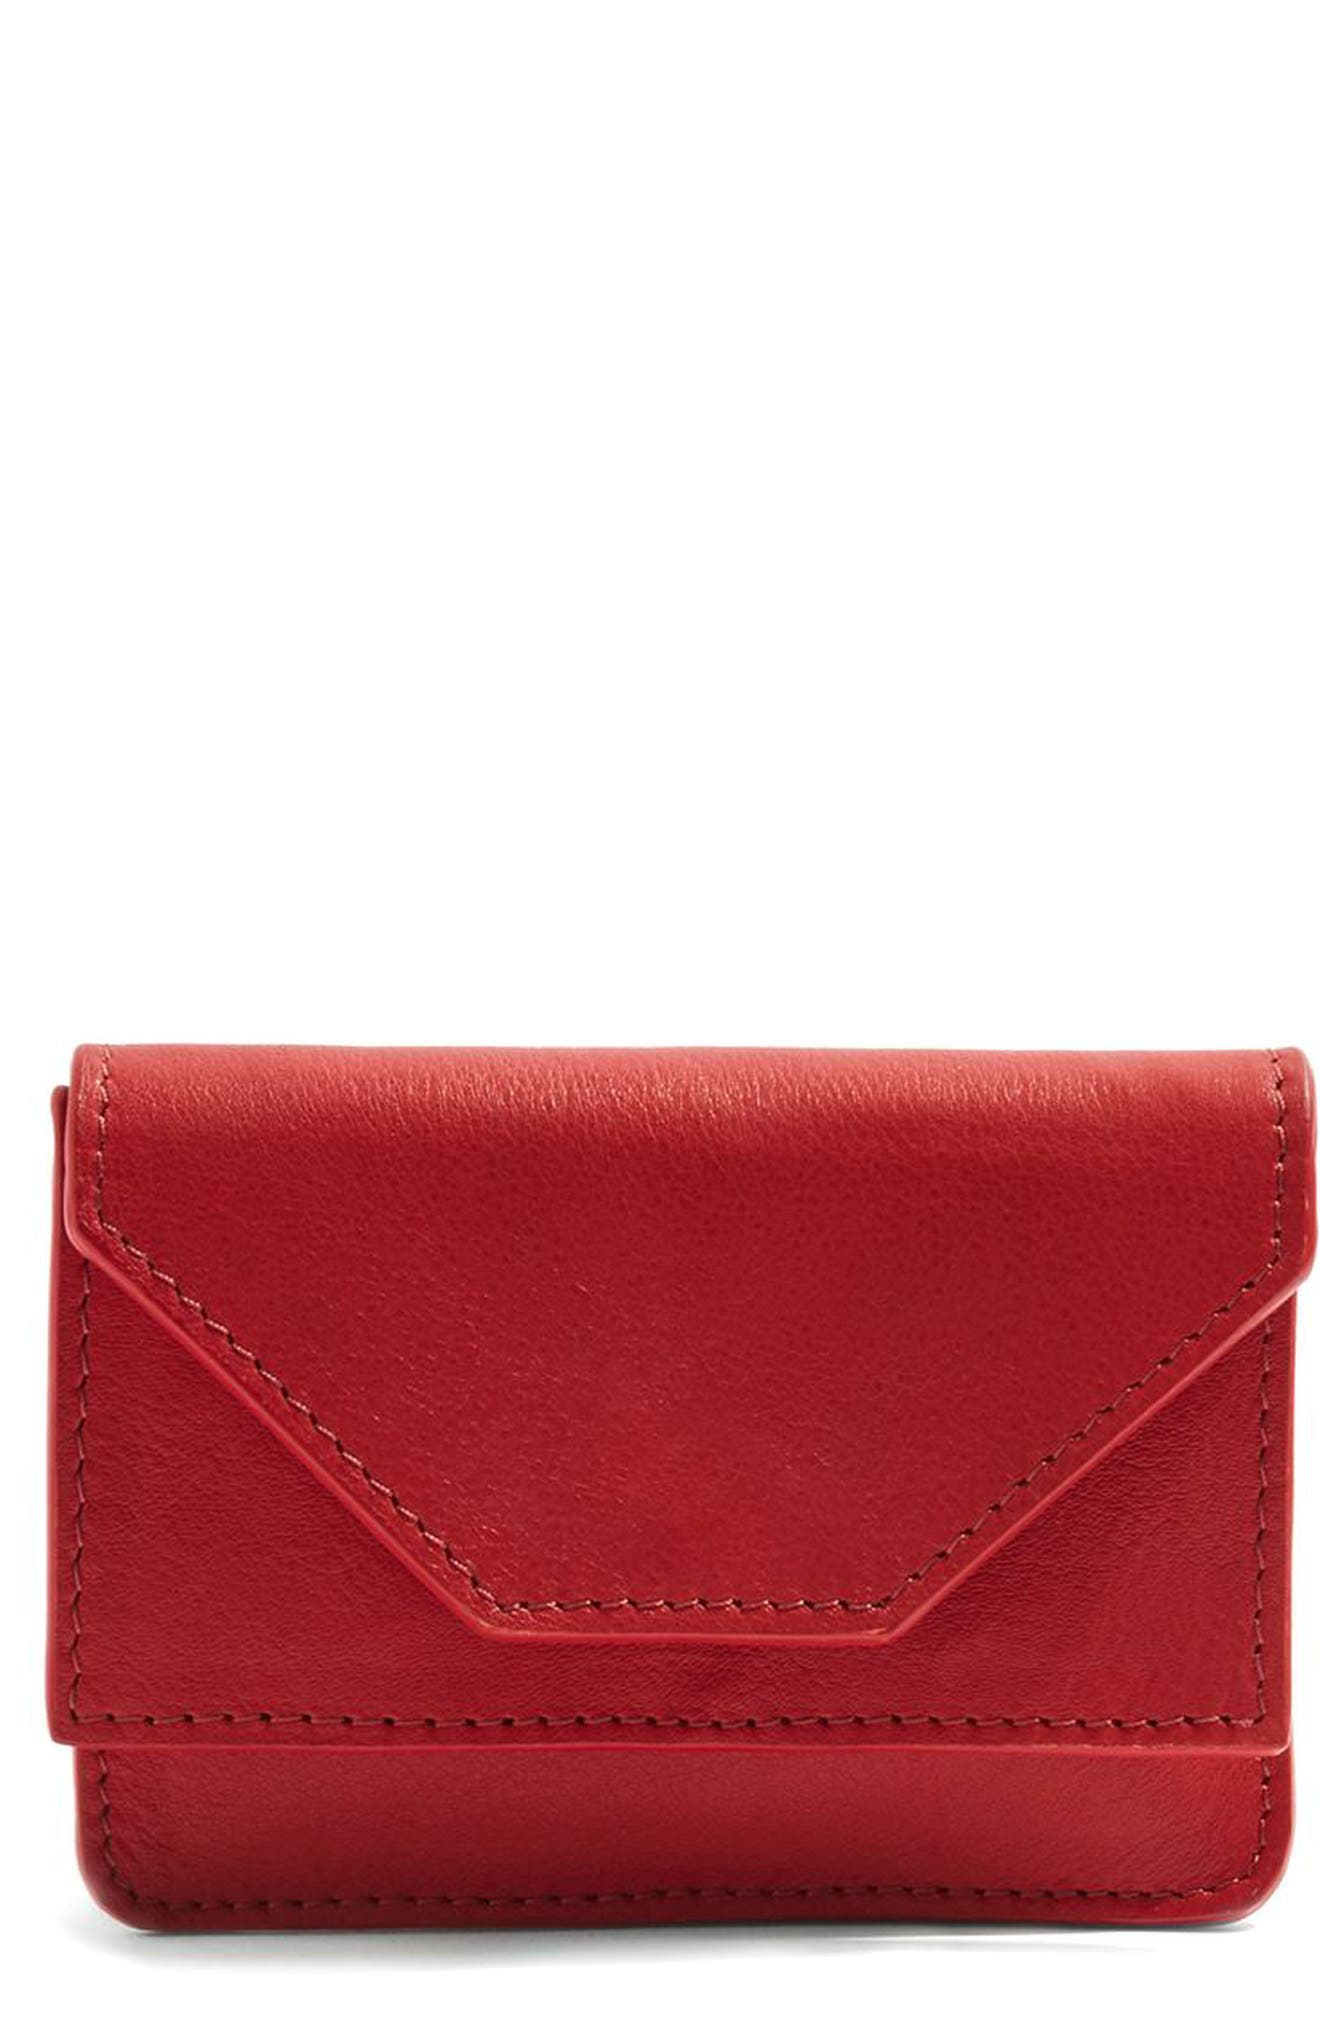 Leather Card Case,                             Main thumbnail 1, color,                             600